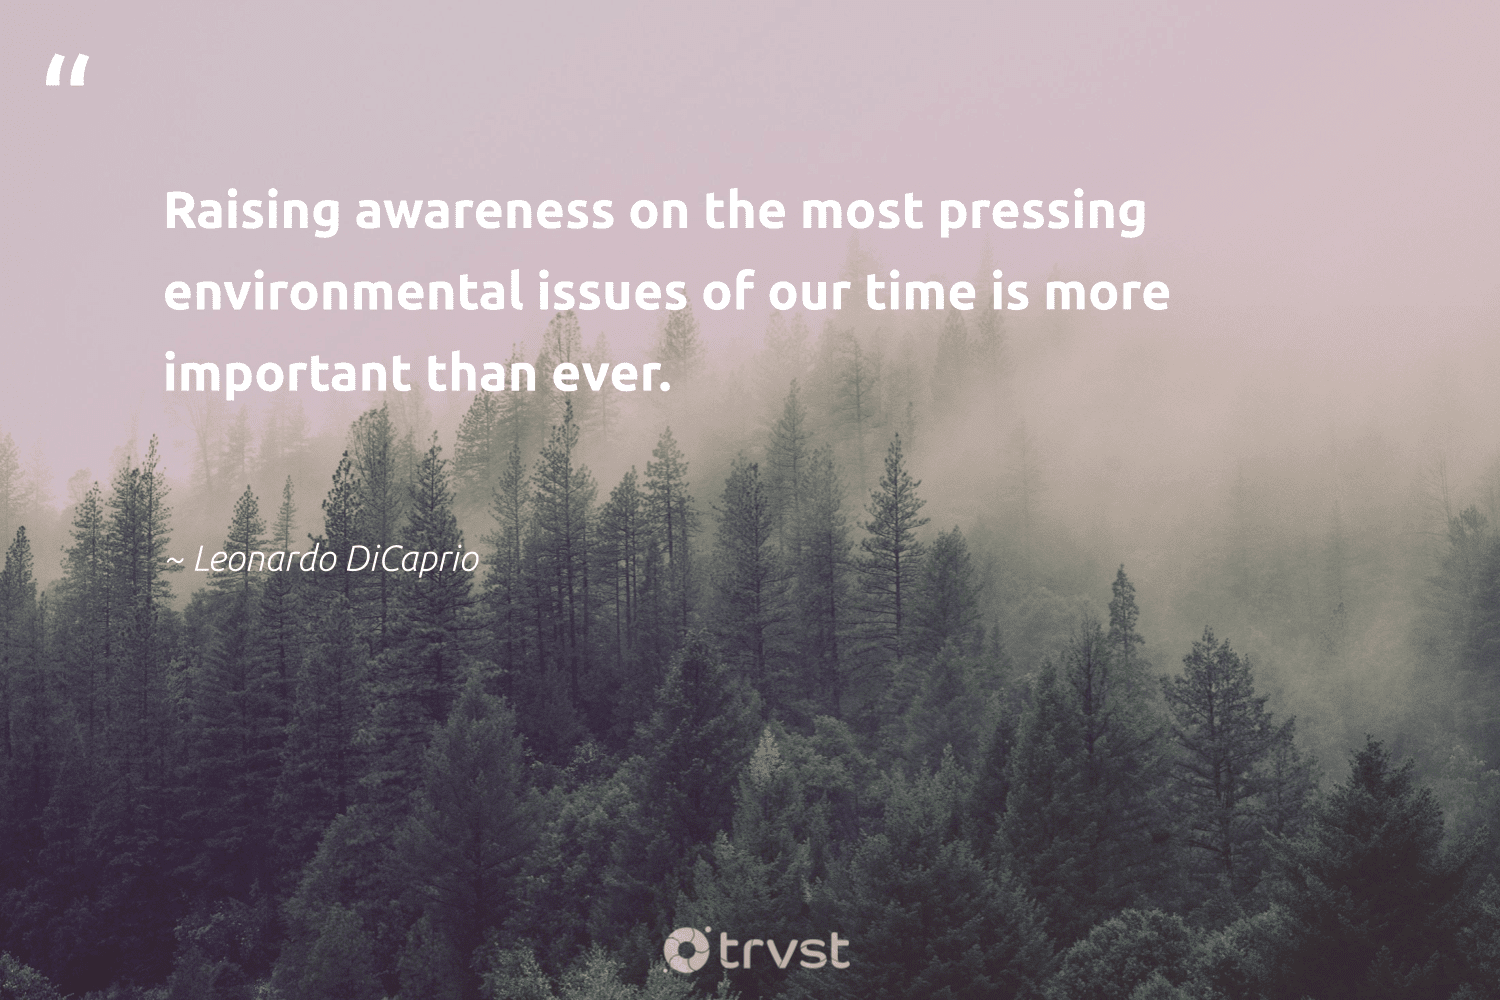 """""""Raising awareness on the most pressing environmental issues of our time is more important than ever.""""  - Leonardo DiCaprio #trvst #quotes #environmental #sustainableliving #beinspired #noplanetb #changetheworld #getoutside #dogood #environmentallyfriendly #planetearthfirst #volunteer"""